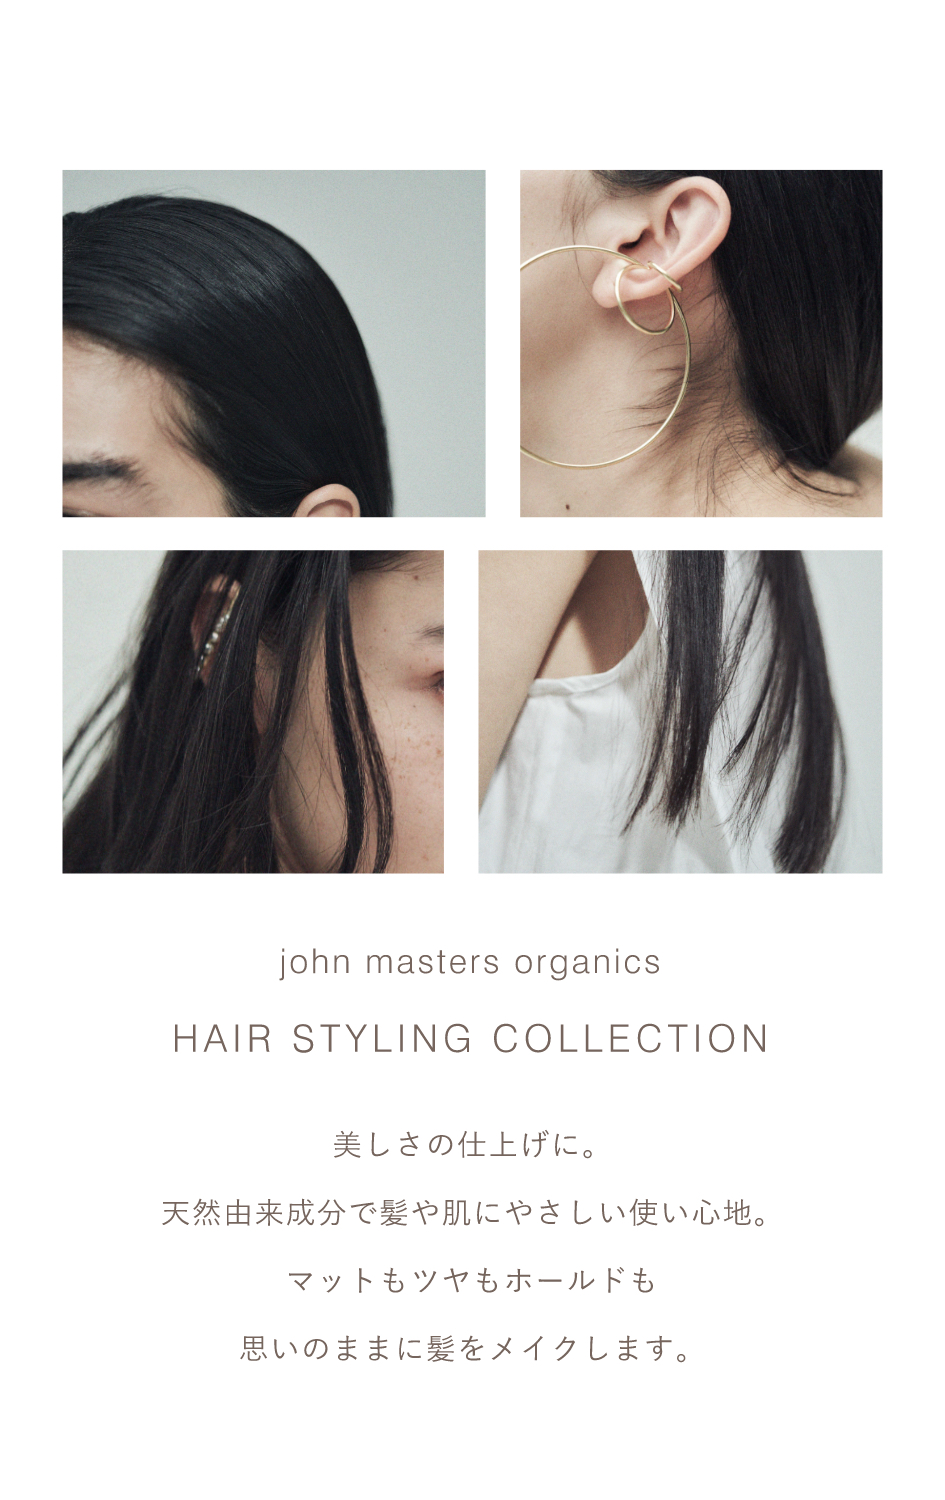 john masters organics HAIR STYLING COLLECTION